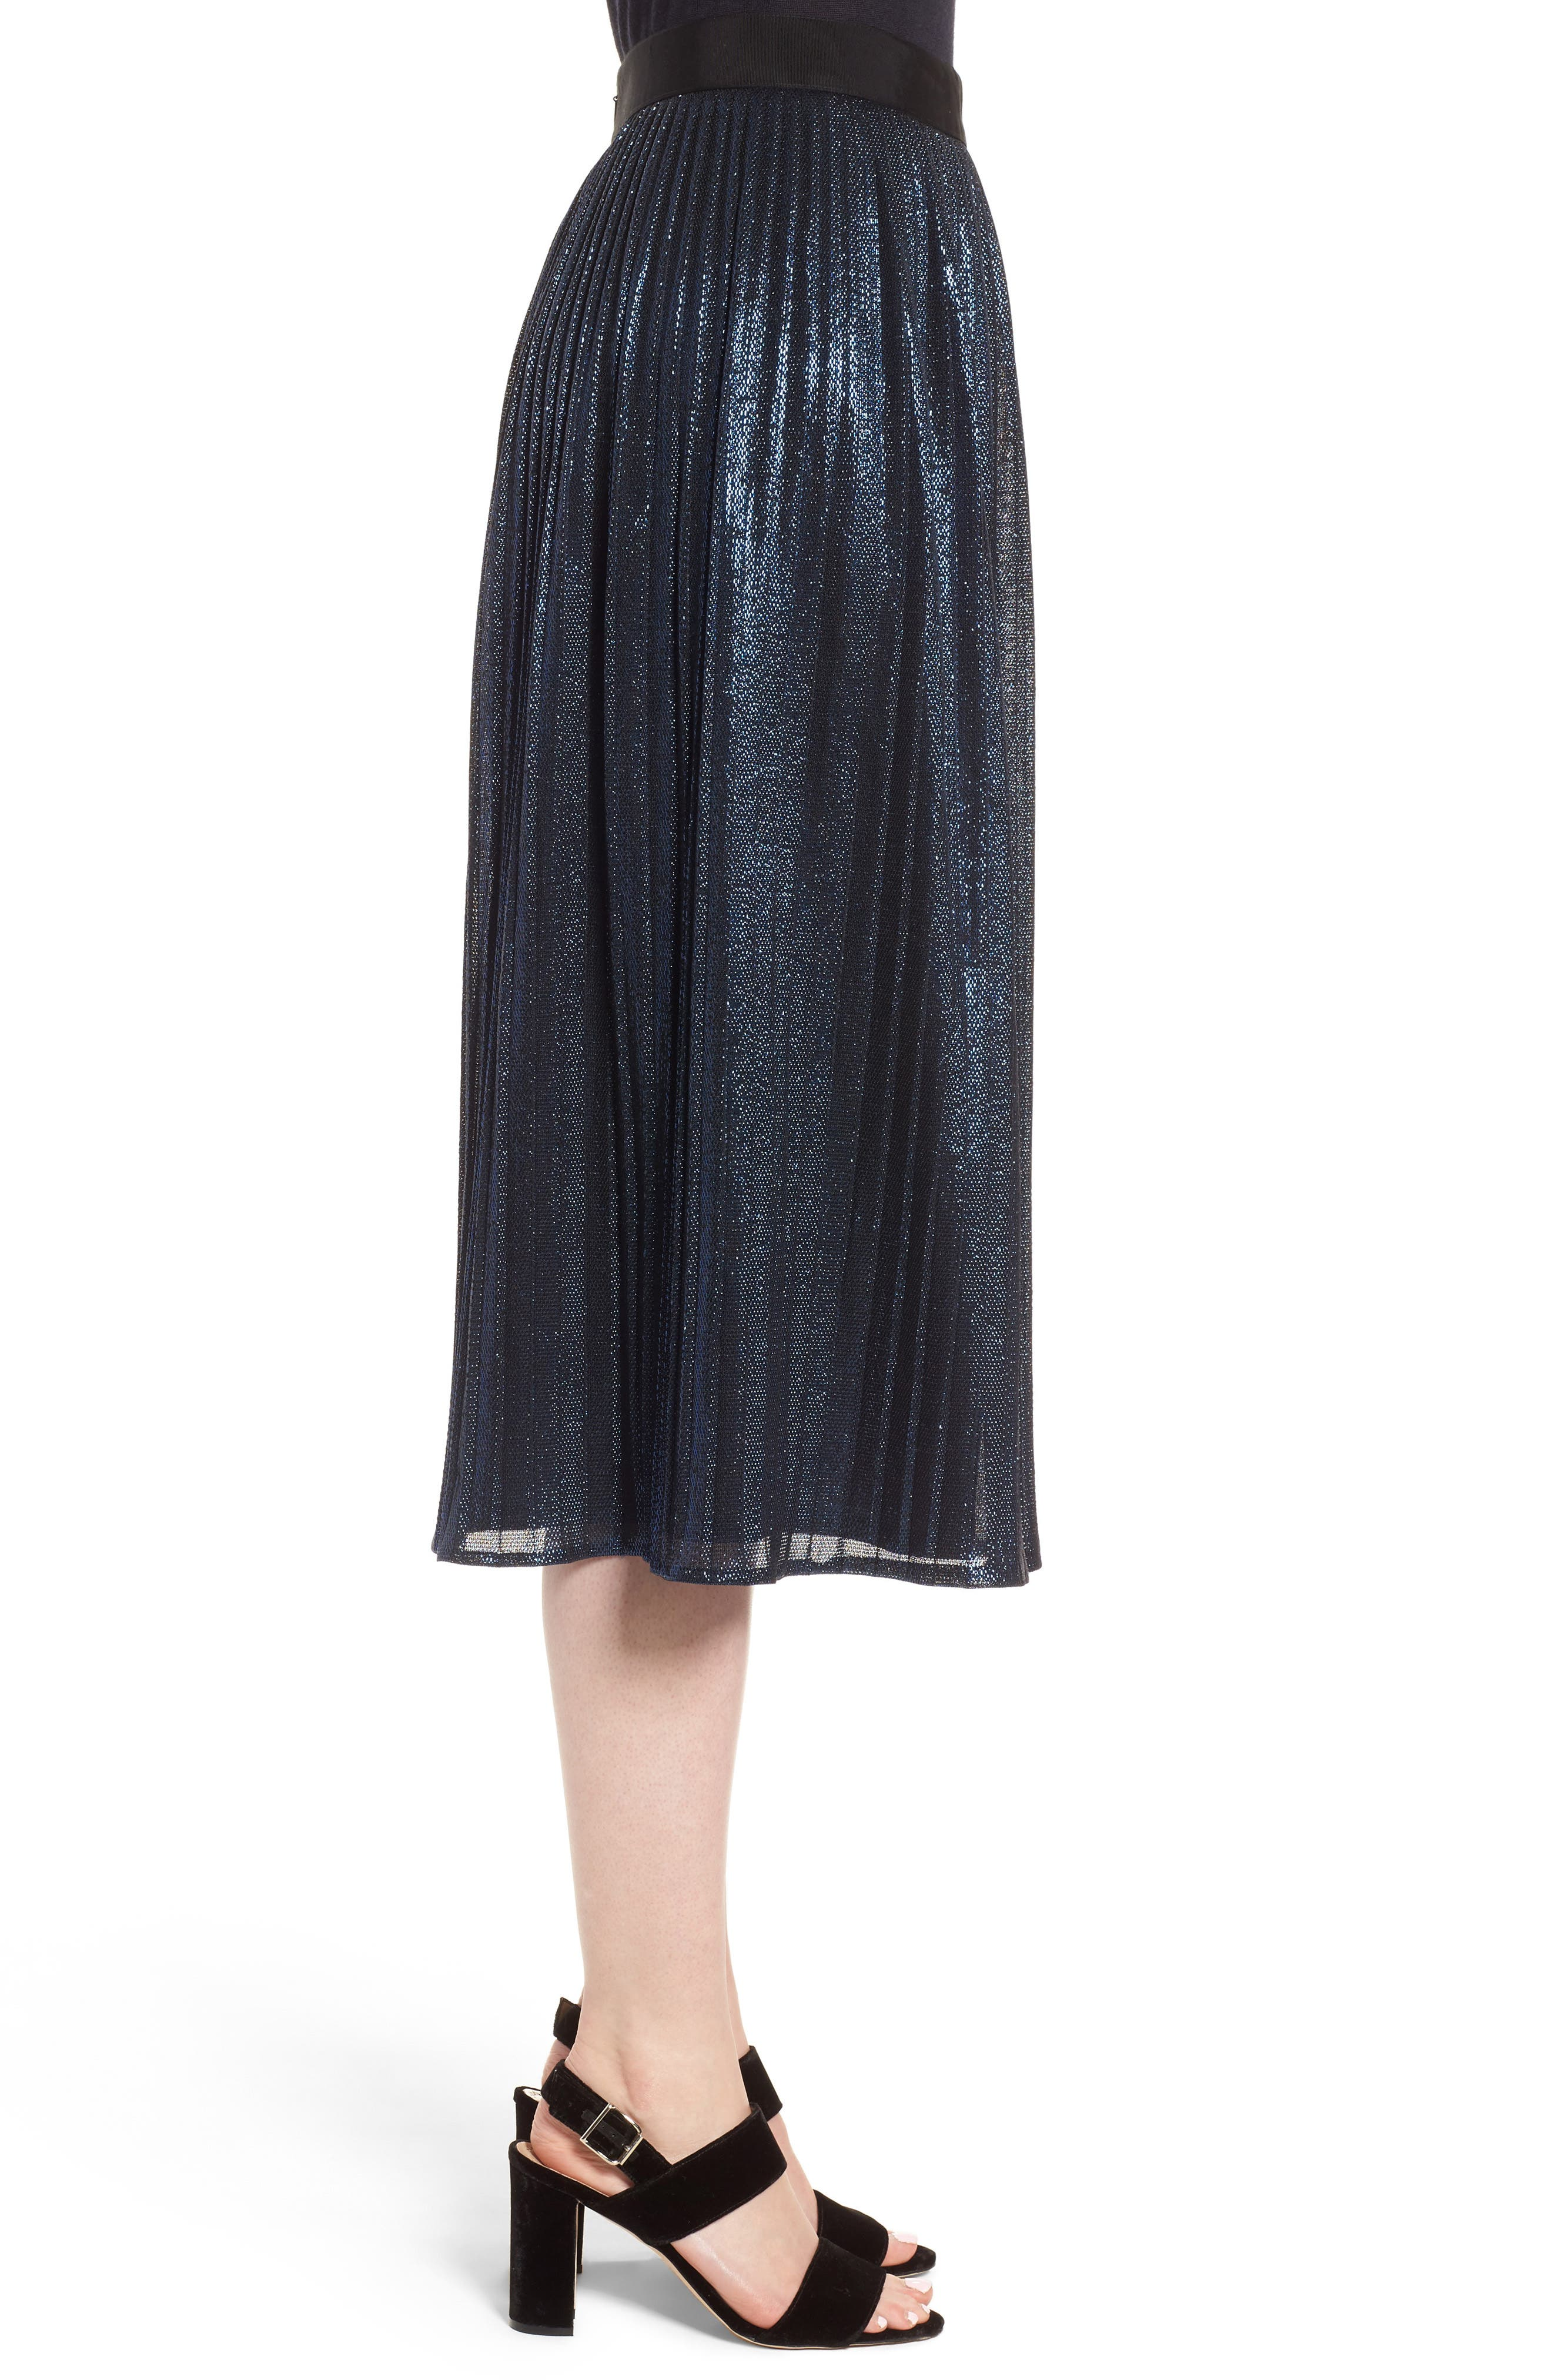 Miplisa Metallic Pleated Midi Skirt,                             Alternate thumbnail 3, color,                             480